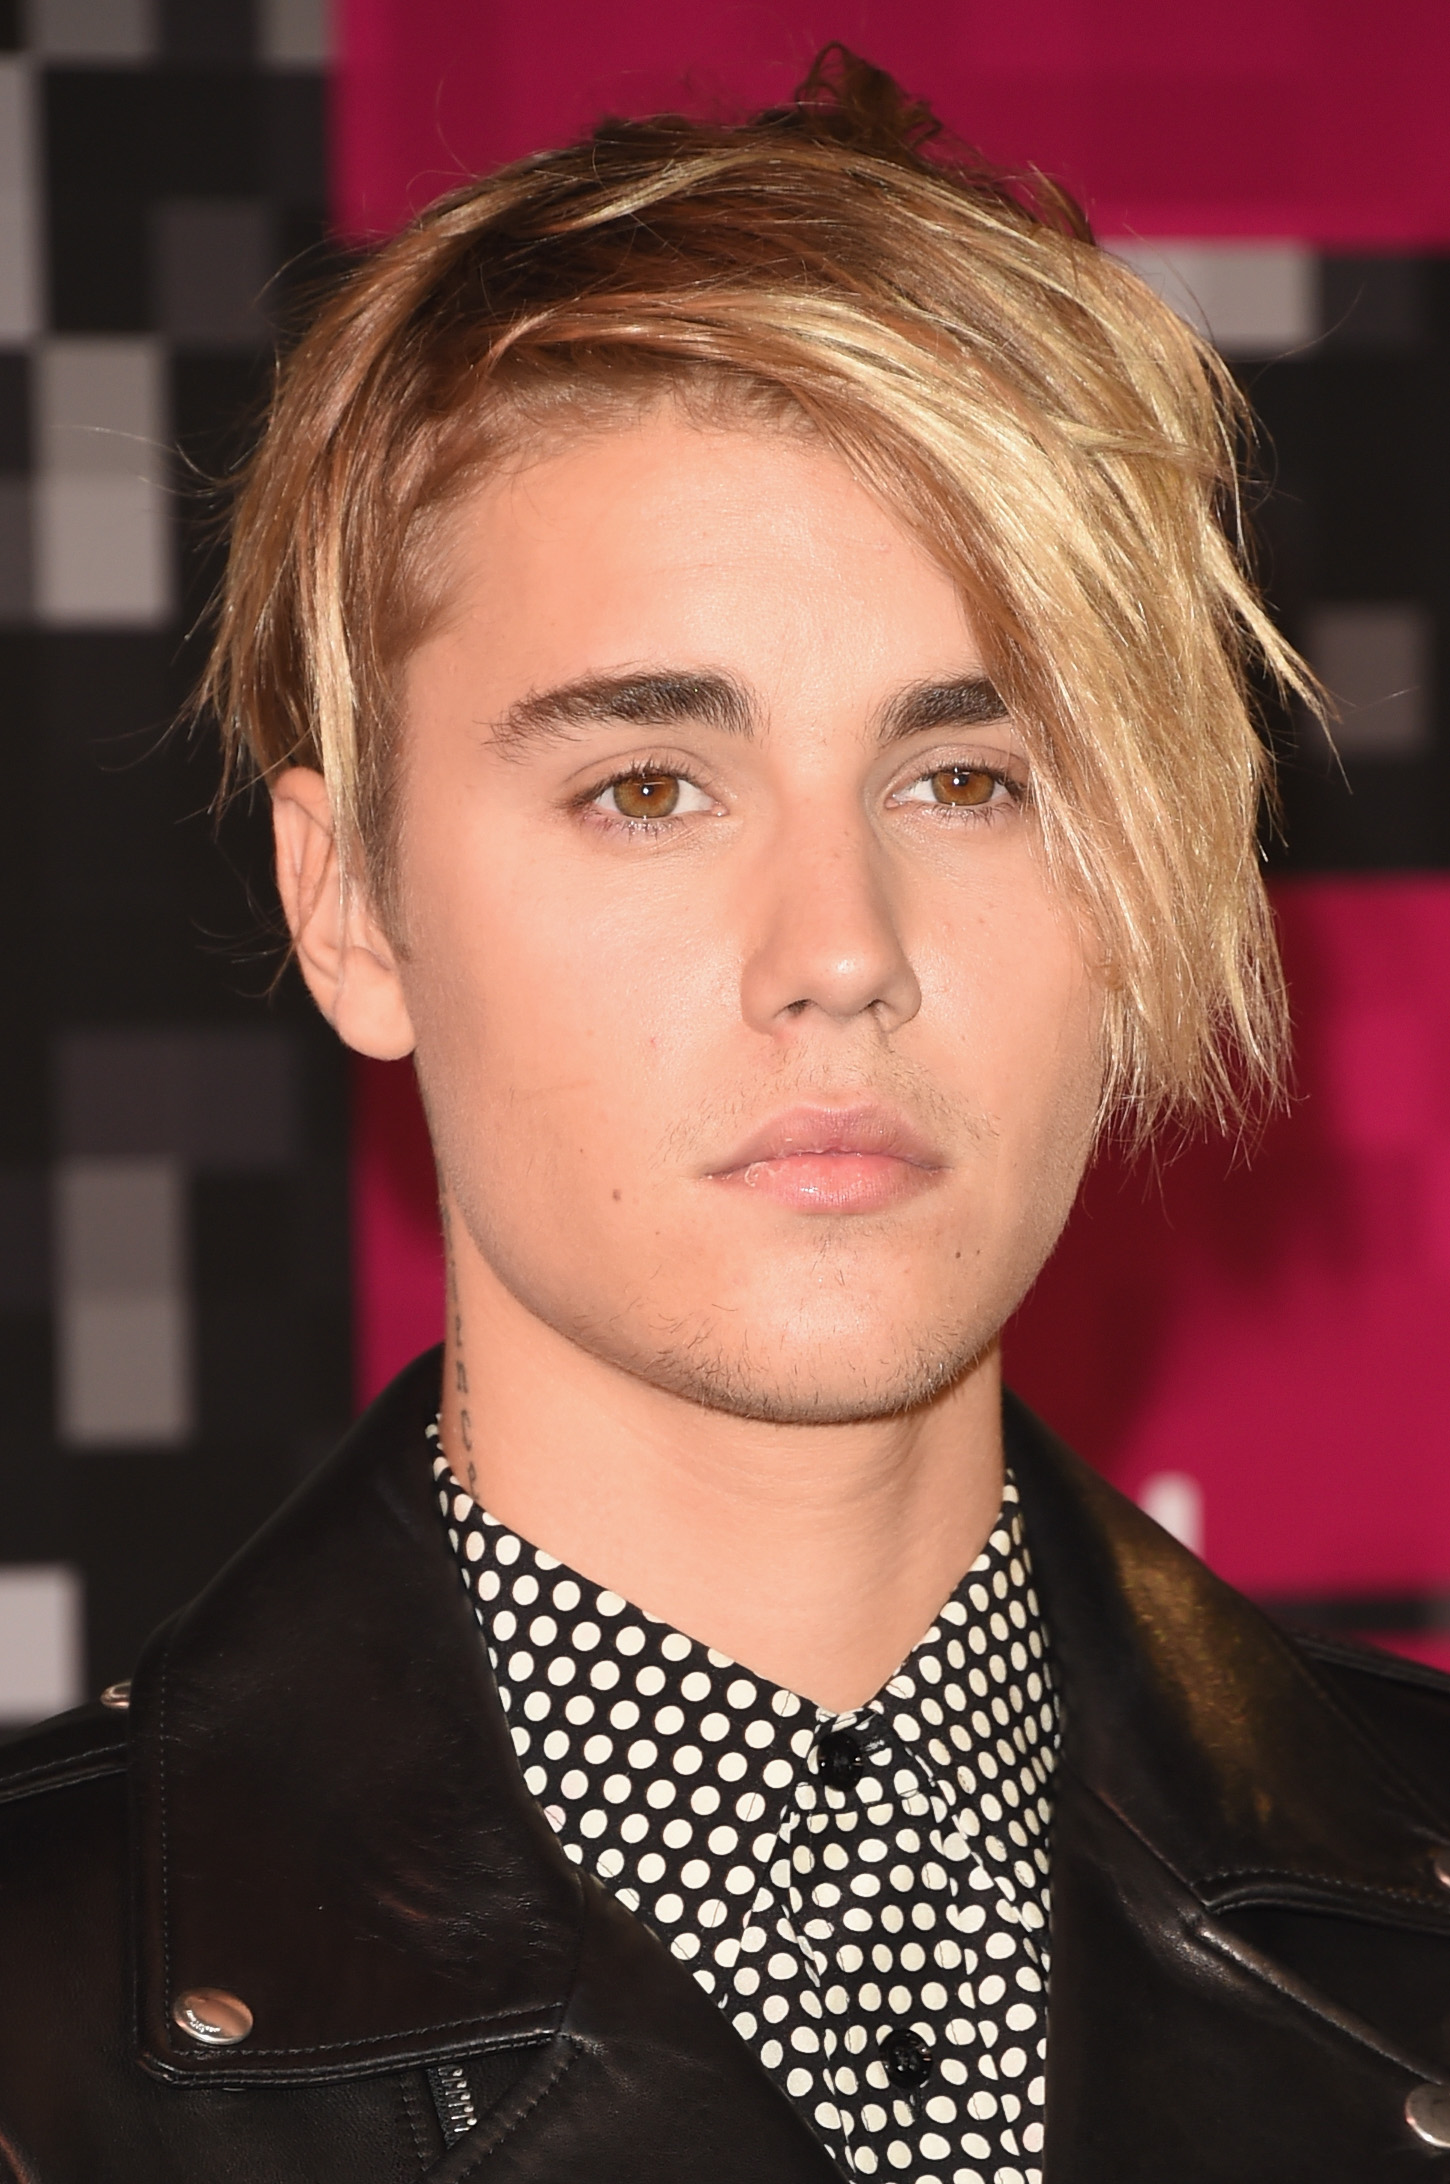 Justin Bieber at the 2015 MTV Video Music Awards in Los Angeles on Aug. 30, 2015.